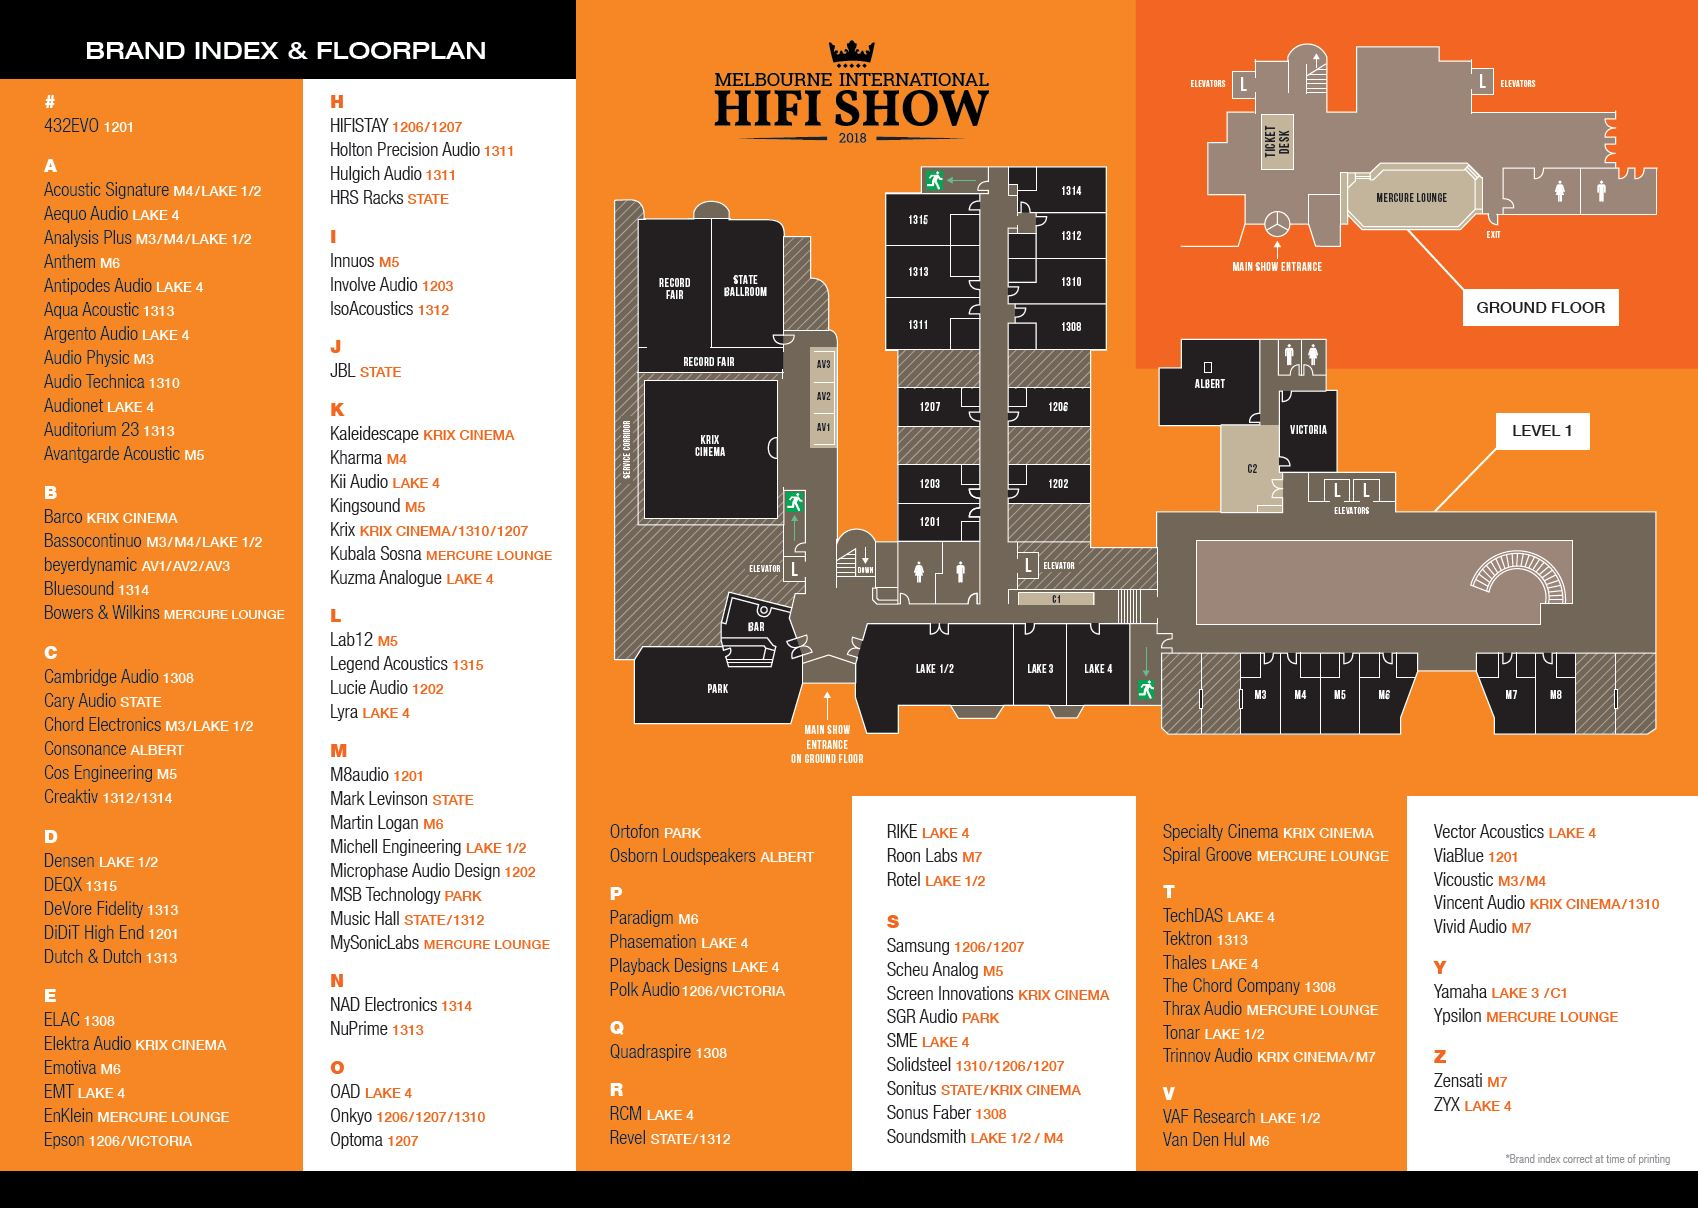 2018 Melbourne International Hi-Fi Show Floorplan